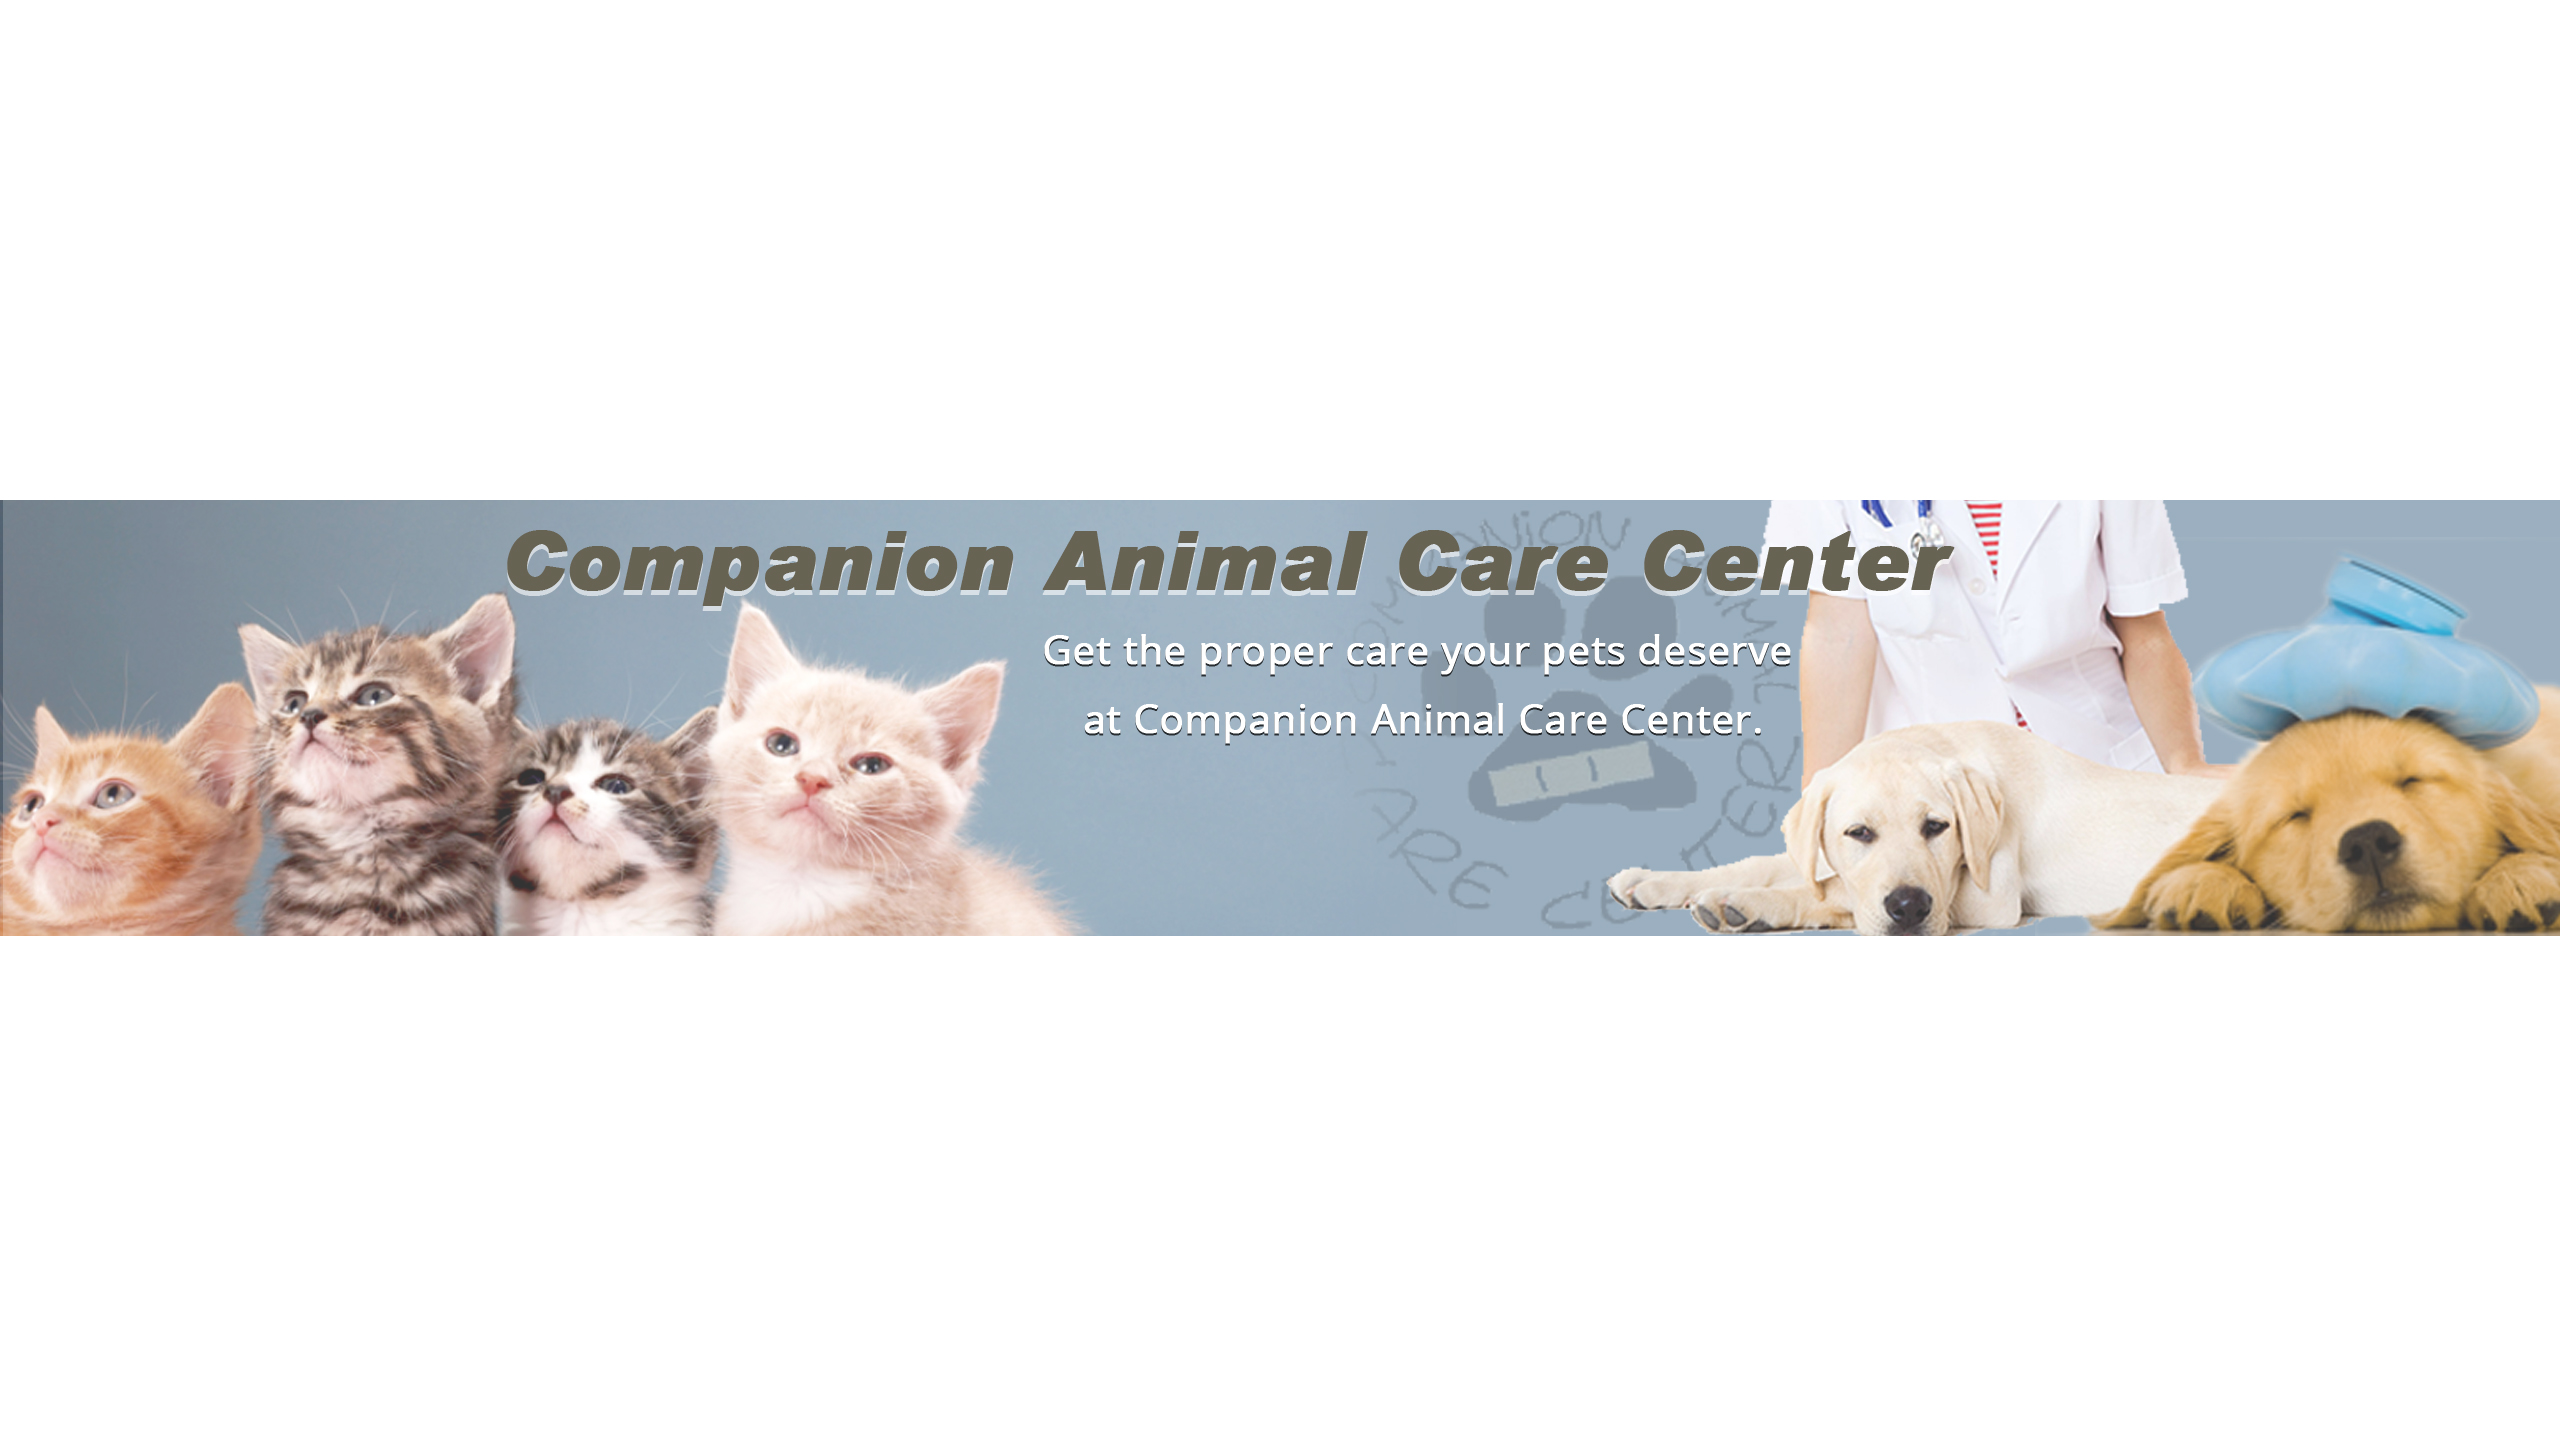 Companion Animal Care Center pet grooming Maryland directory